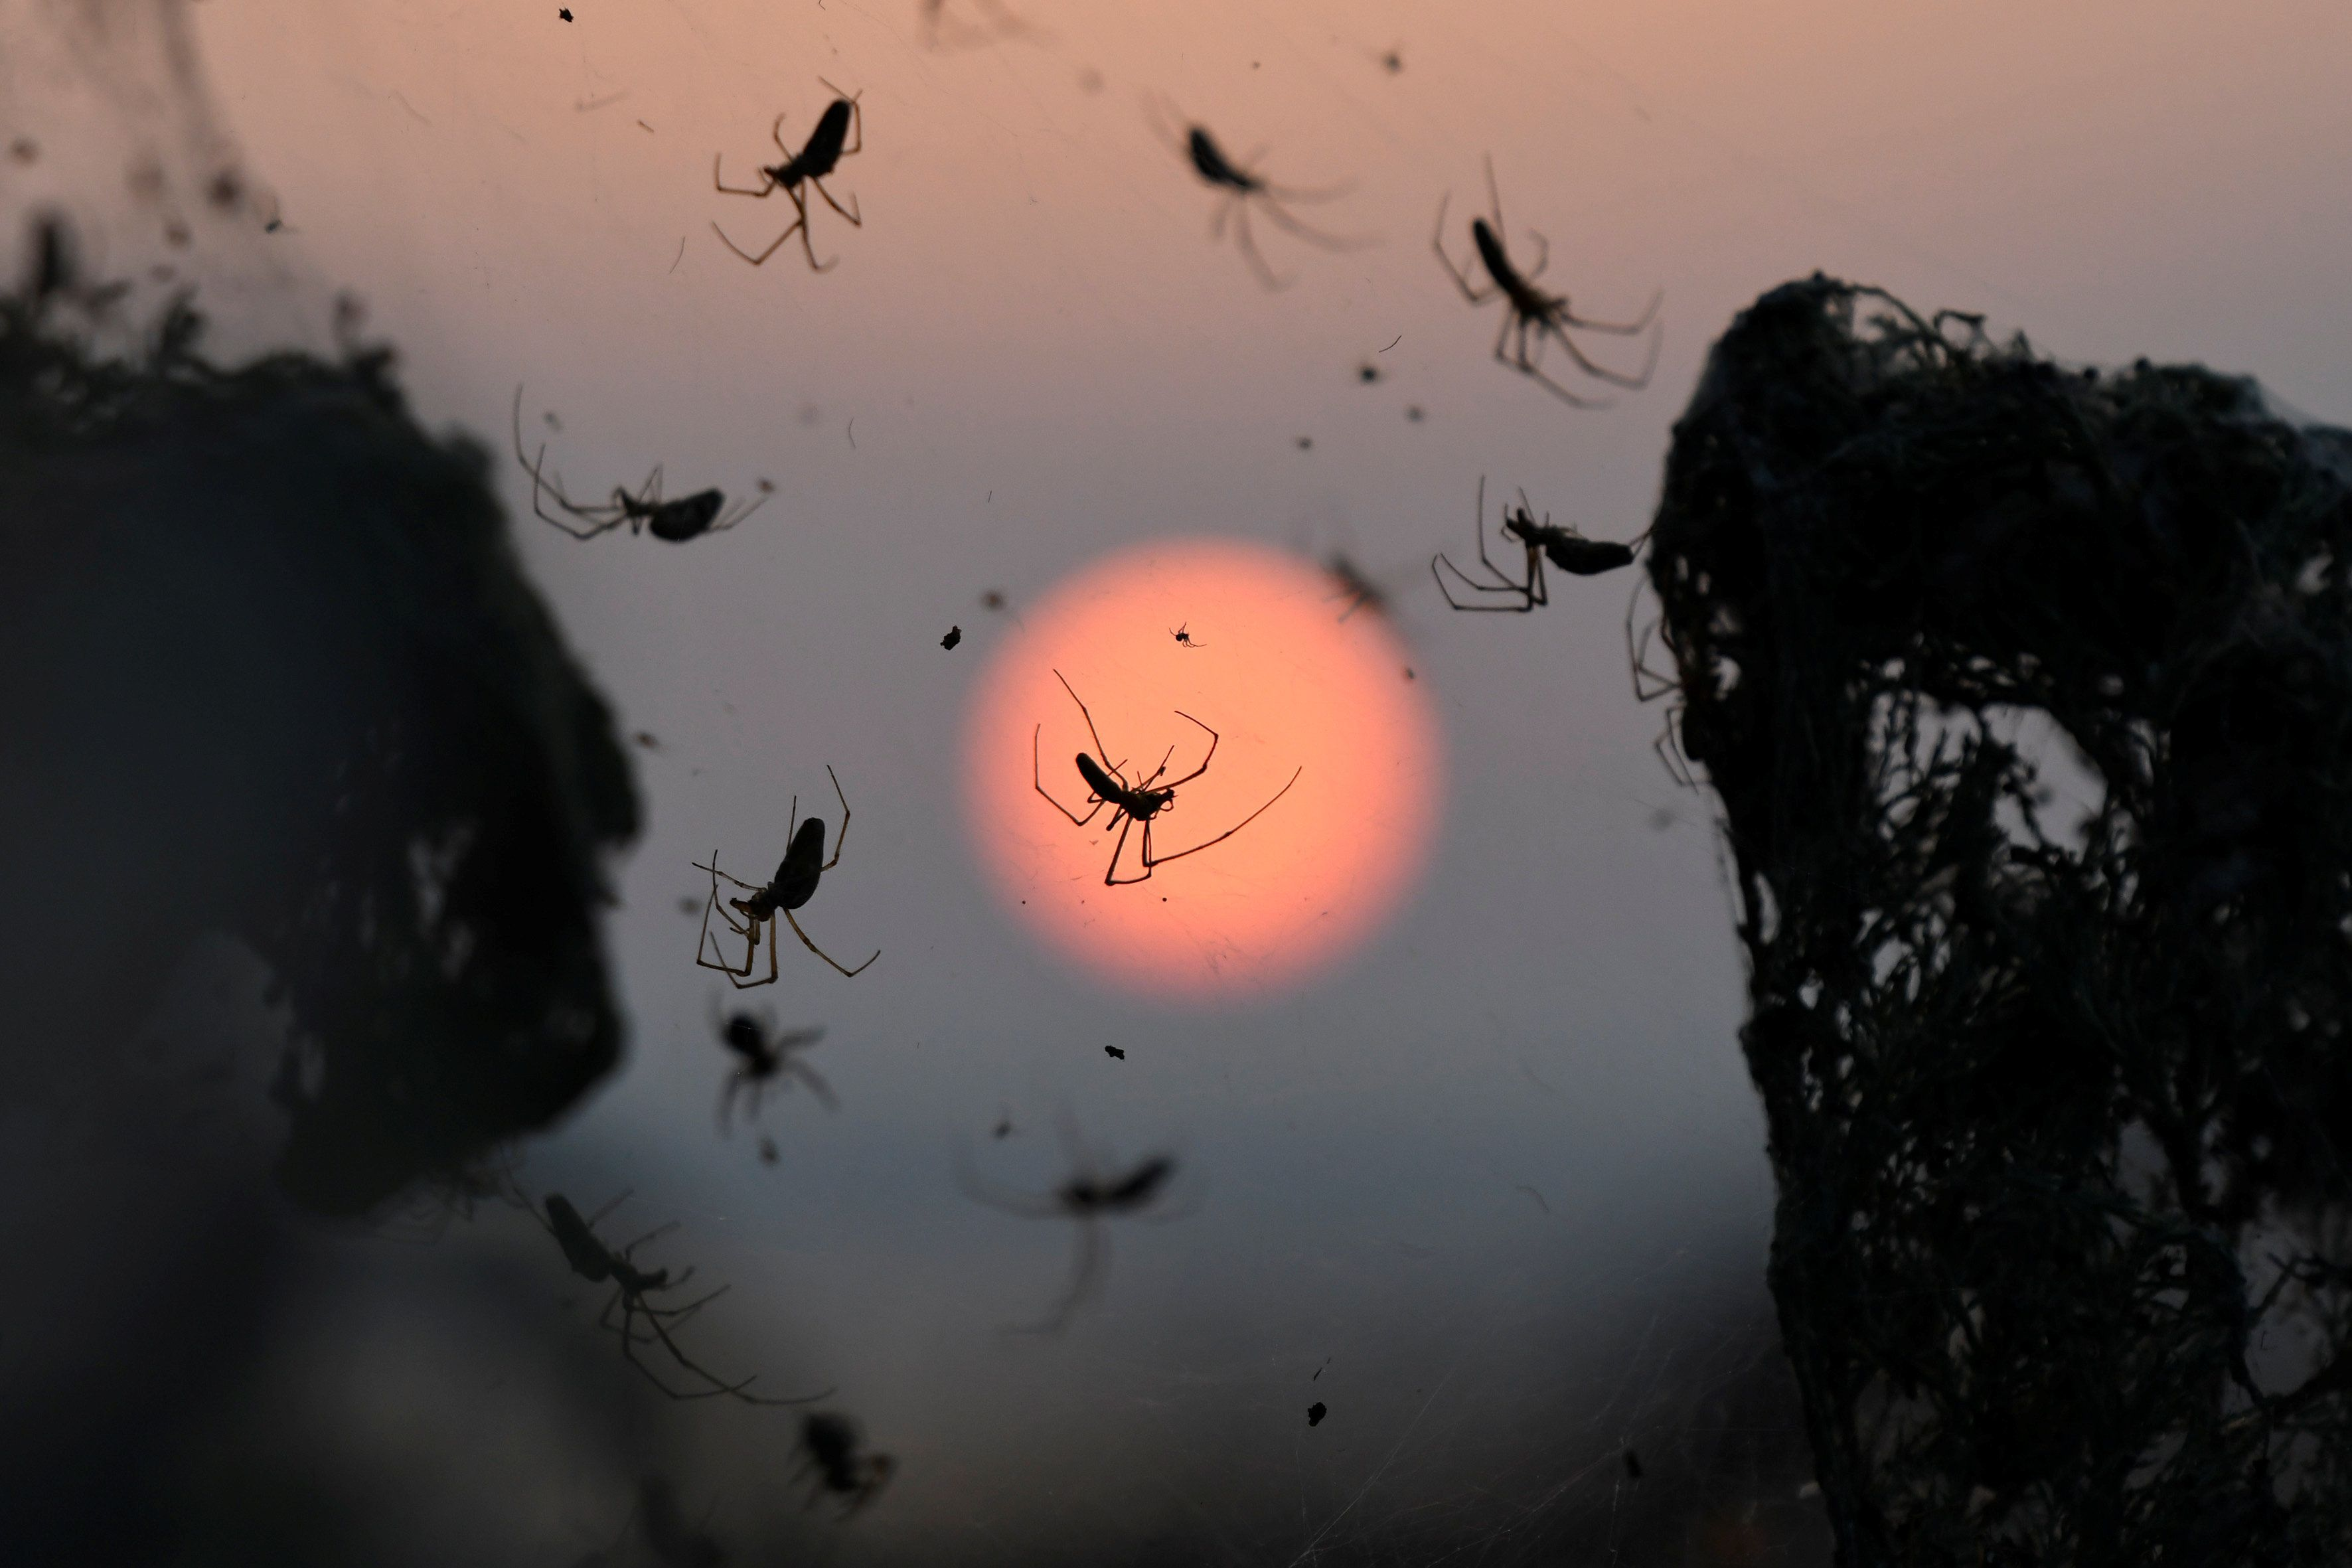 A close-up of spiders as the sun rises behind them.